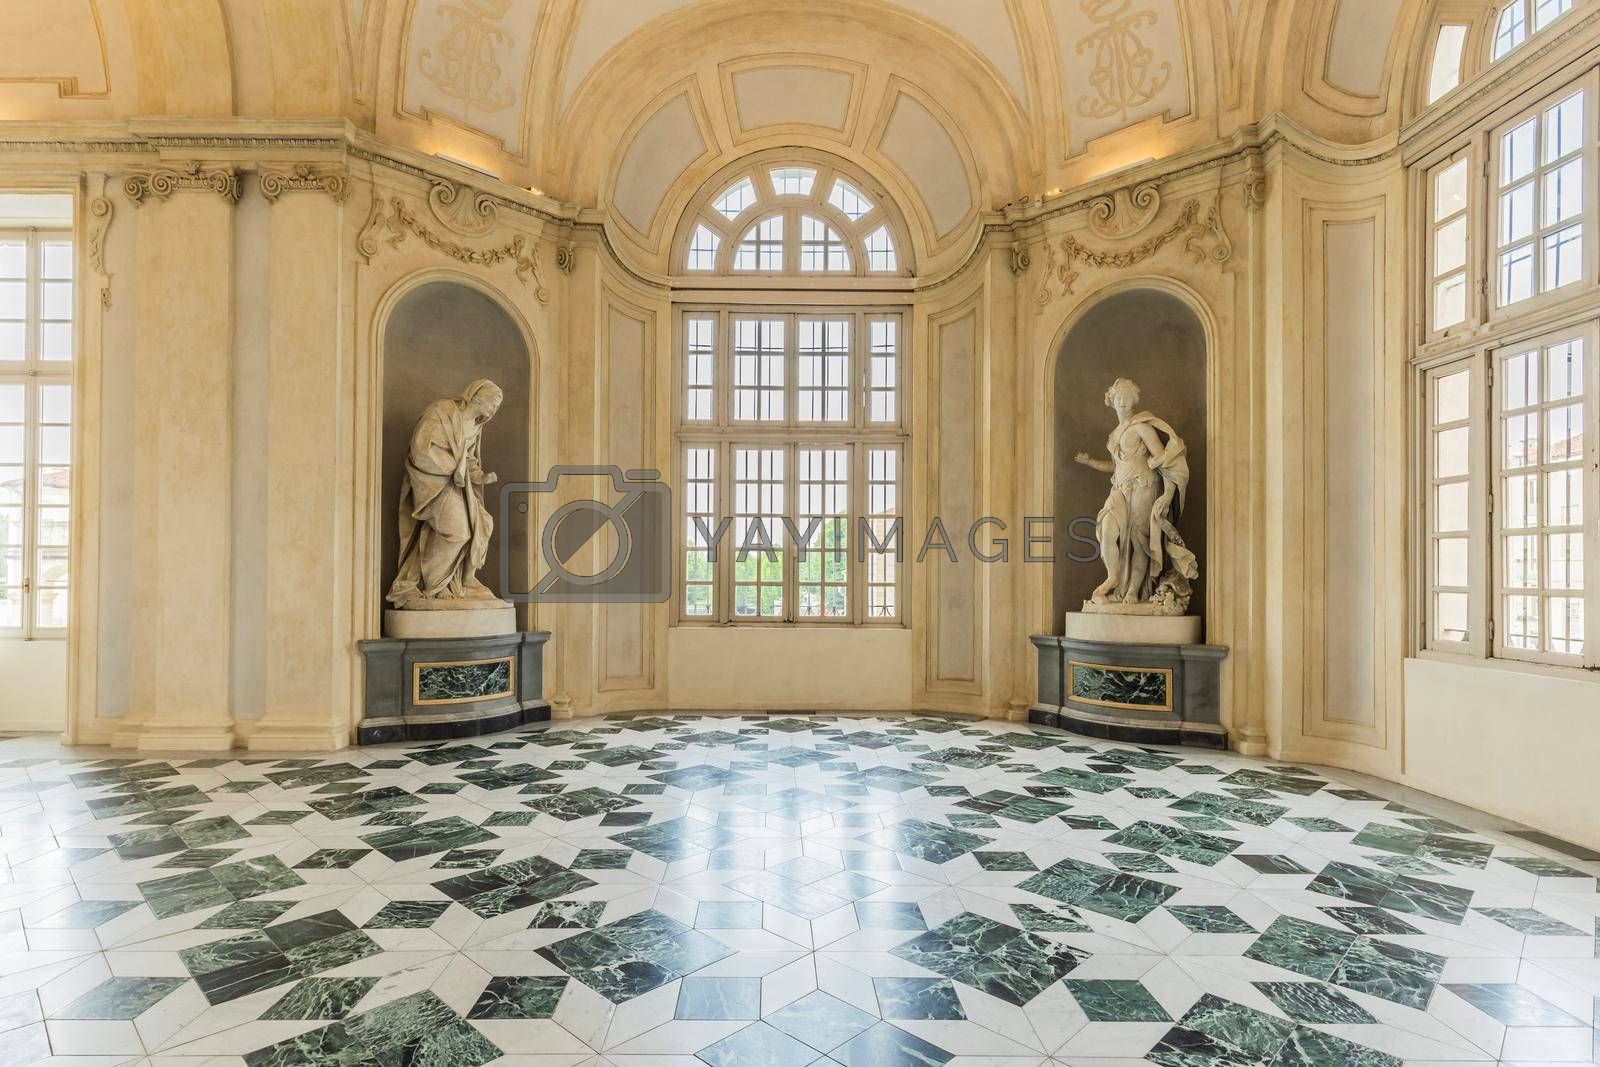 Royalty free image of Corridor with floor made of luxury marbles. Plenty of elegance for this Italian interior in Venaria Reale, Piedmont region - Italy by Perseomedusa